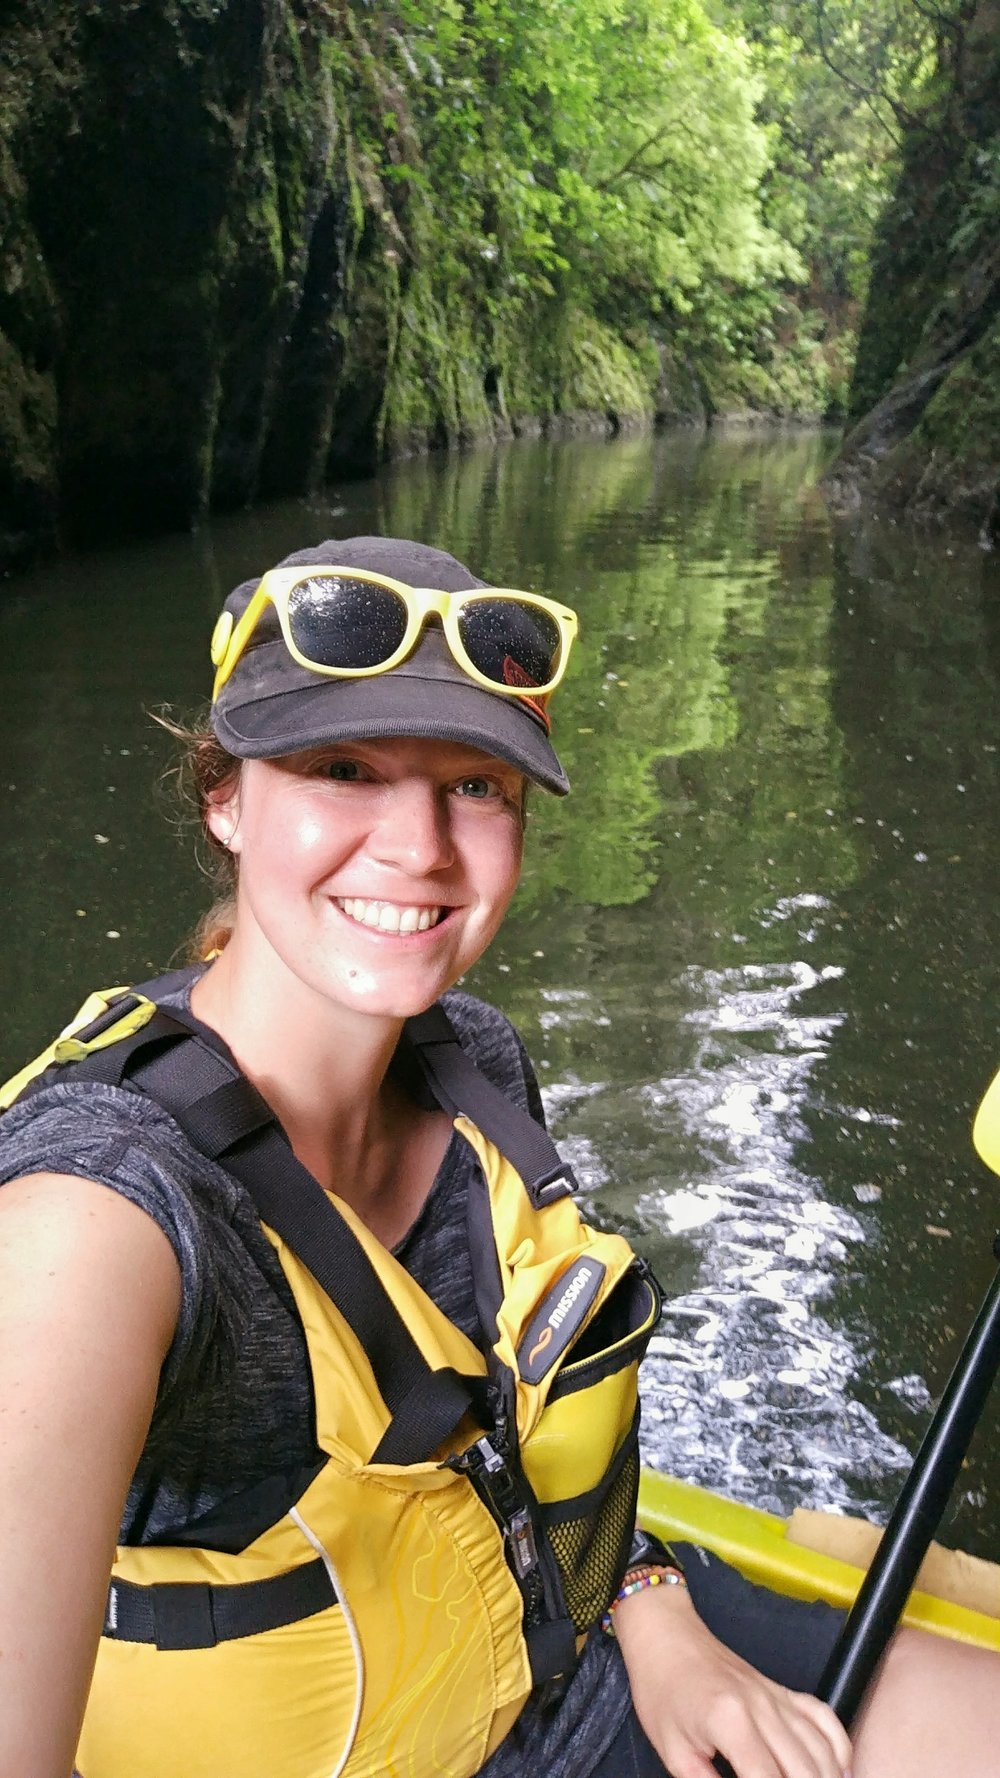 20171211__new_zealand_waikato_lake_karapiro_kayak_canyon_selfie_alex.jpeg